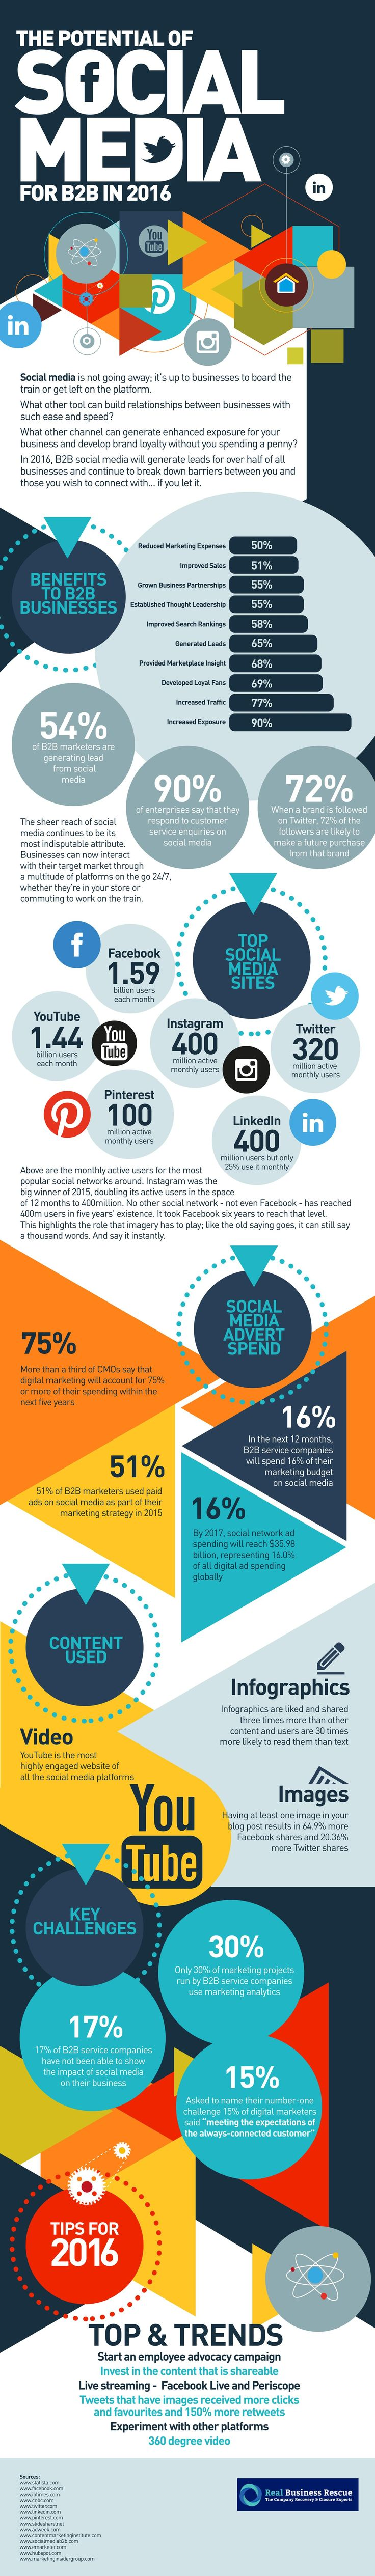 The Potential of Social Media for B2B in 2016 @Infographic #socialmedia